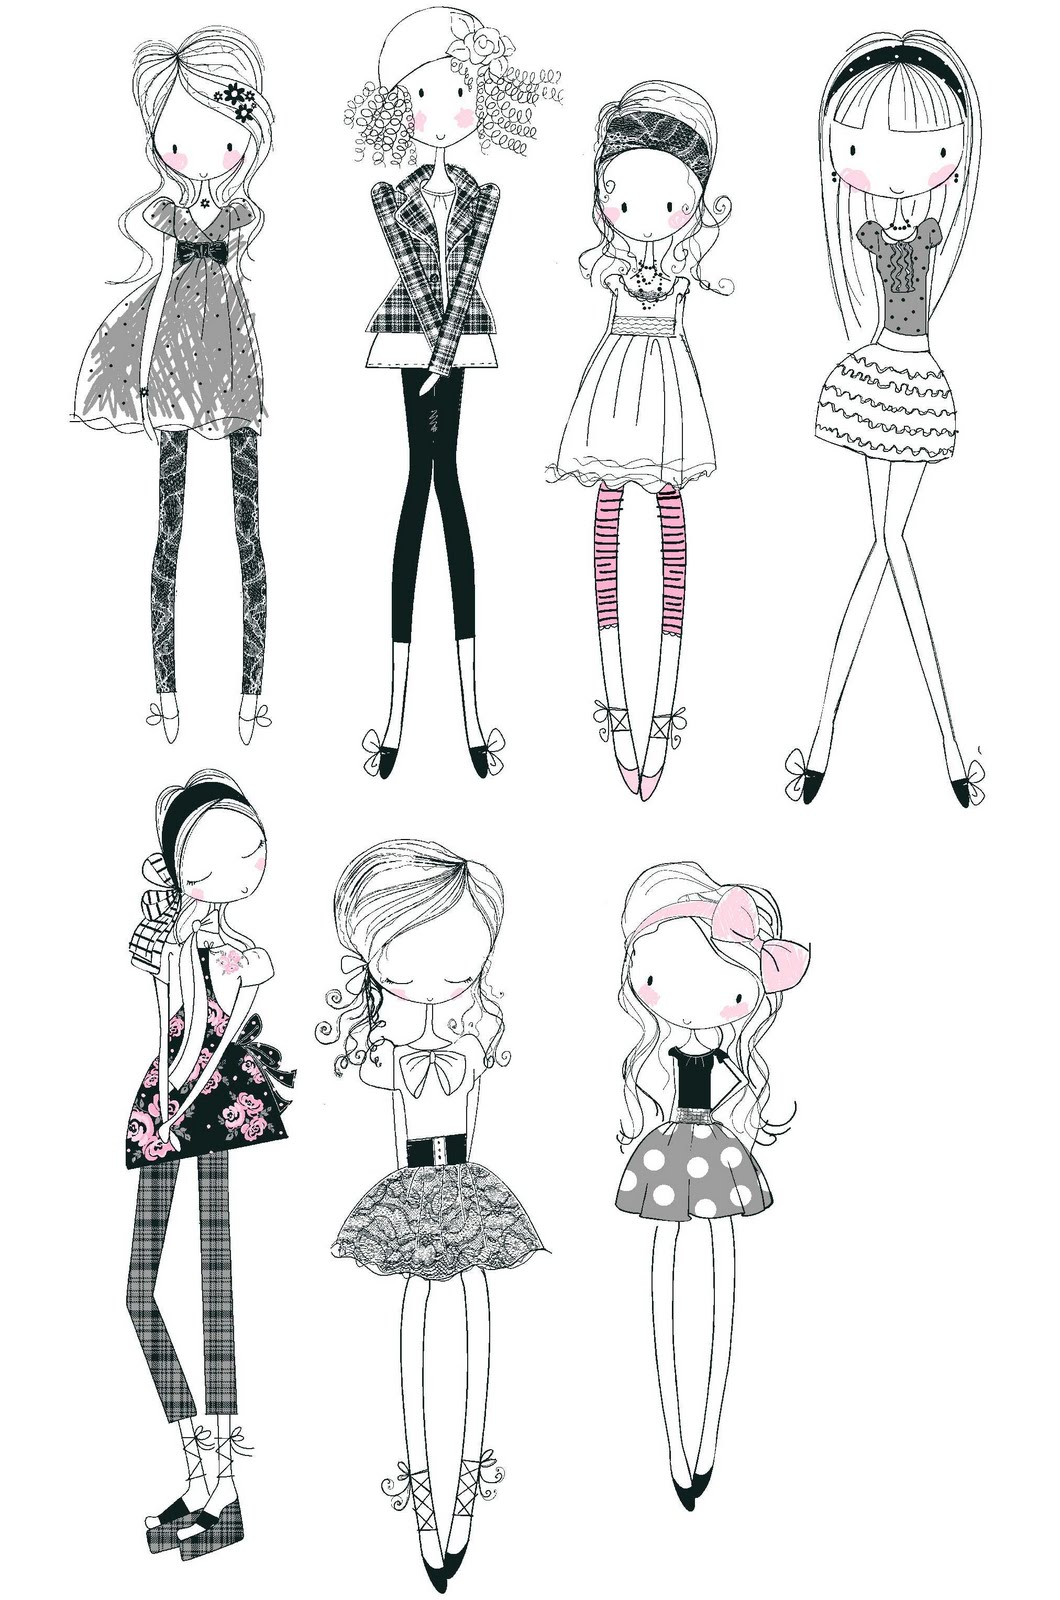 Are cute girl drawings fashion opinion